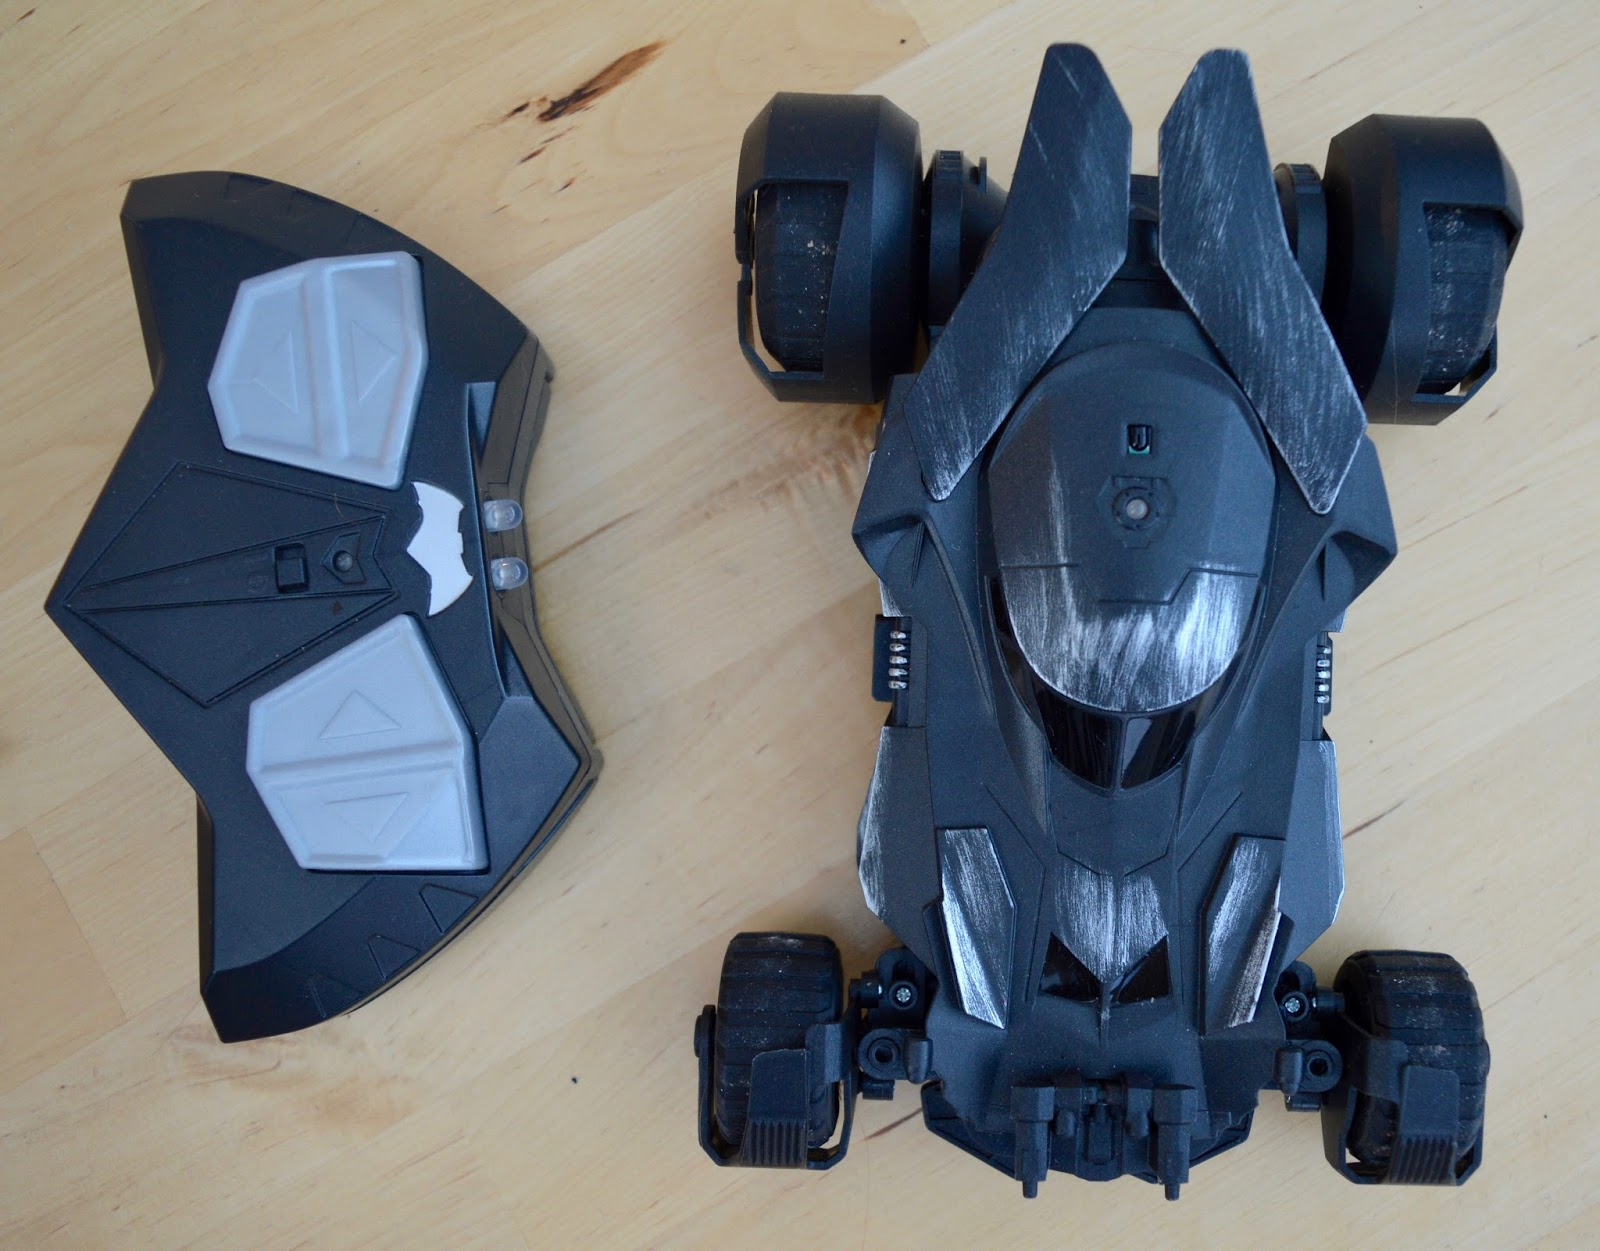 Air Hogs RC Batmobile | A Review - 1:24 replica model from Batman vs Superman